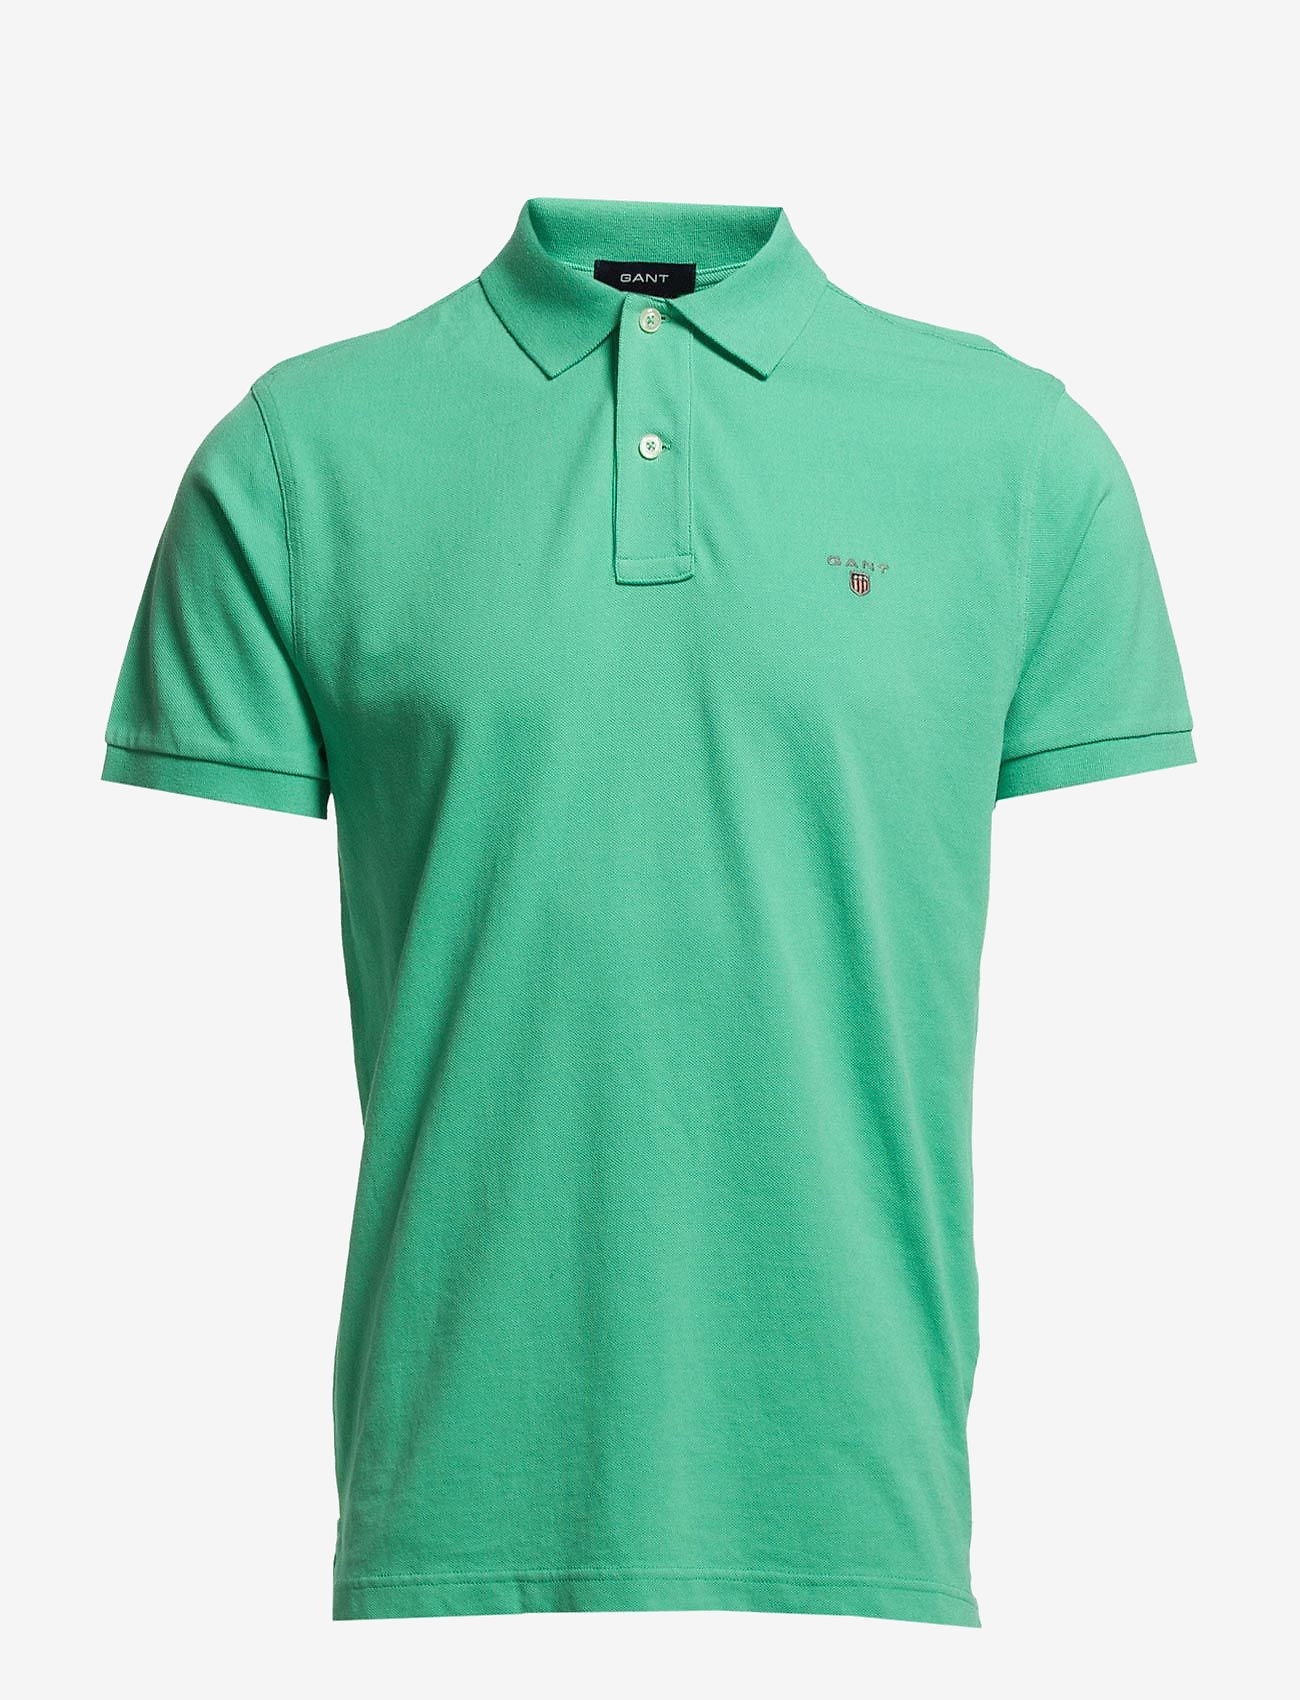 Gant - ORIGINAL PIQUE SS RUGGER - short-sleeved polos - emerald green